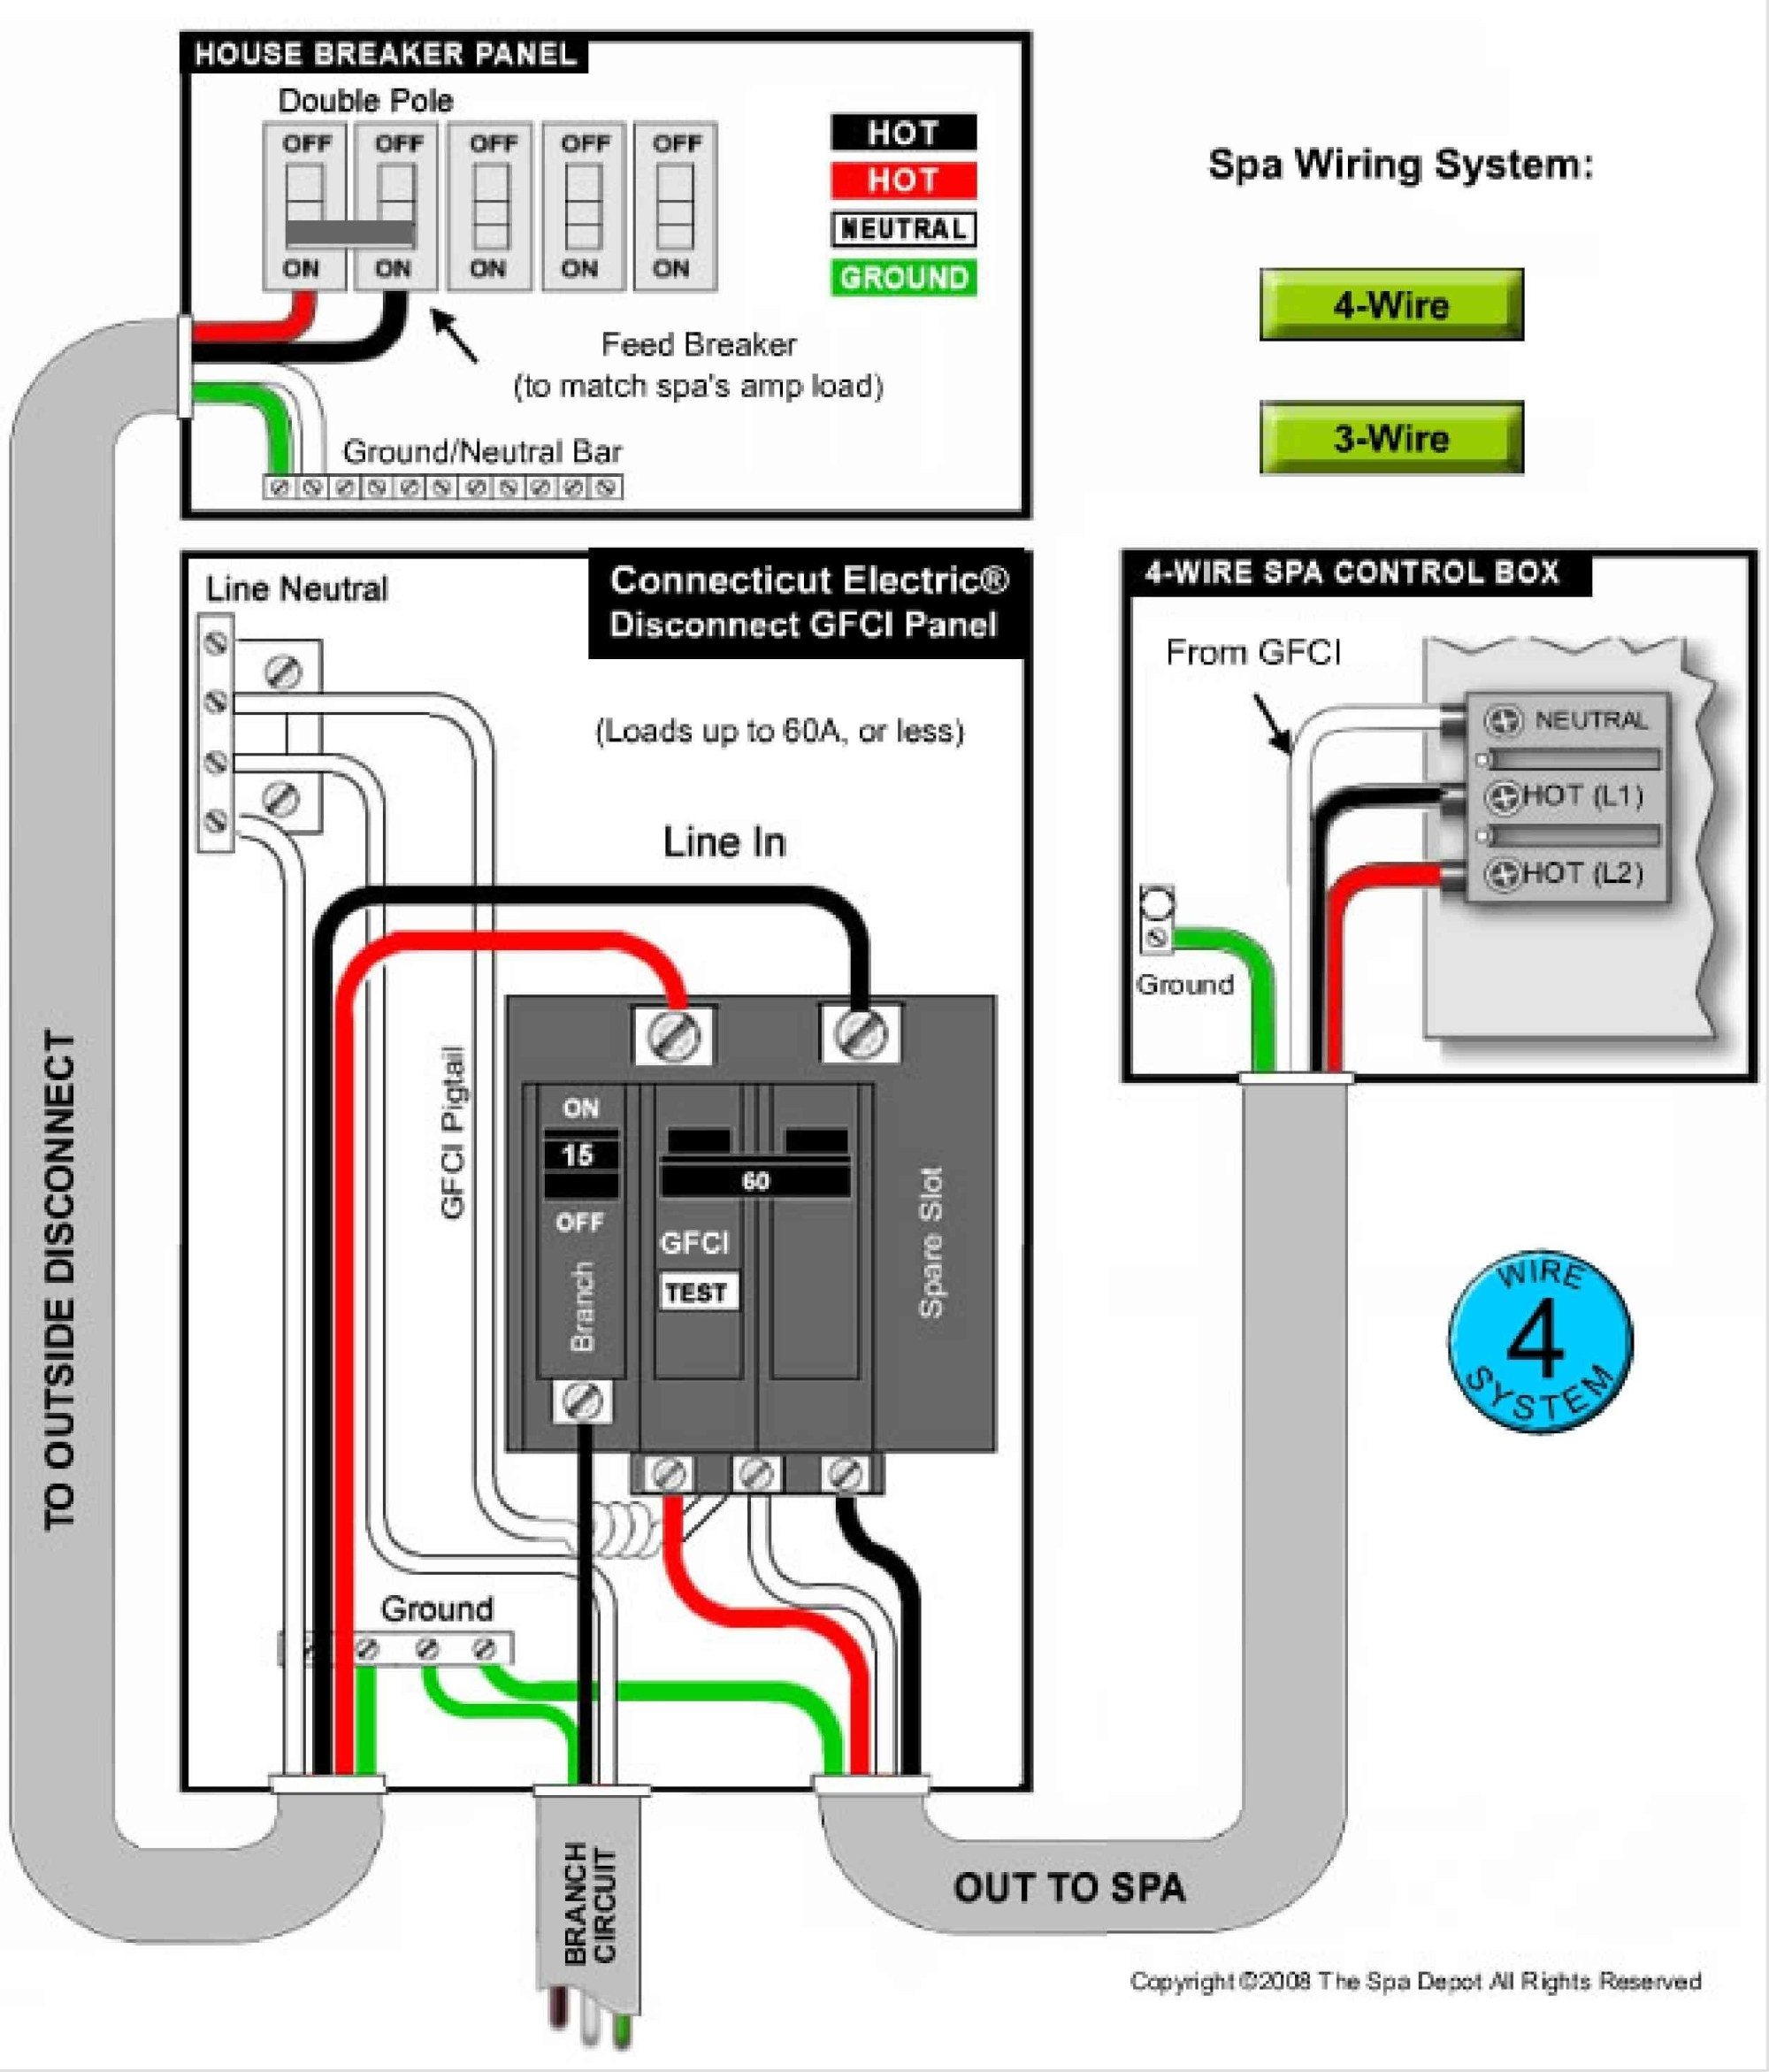 hight resolution of 220v hot tub wiring diagram gallery wiring diagram sample how to wire a 220v spa 220v